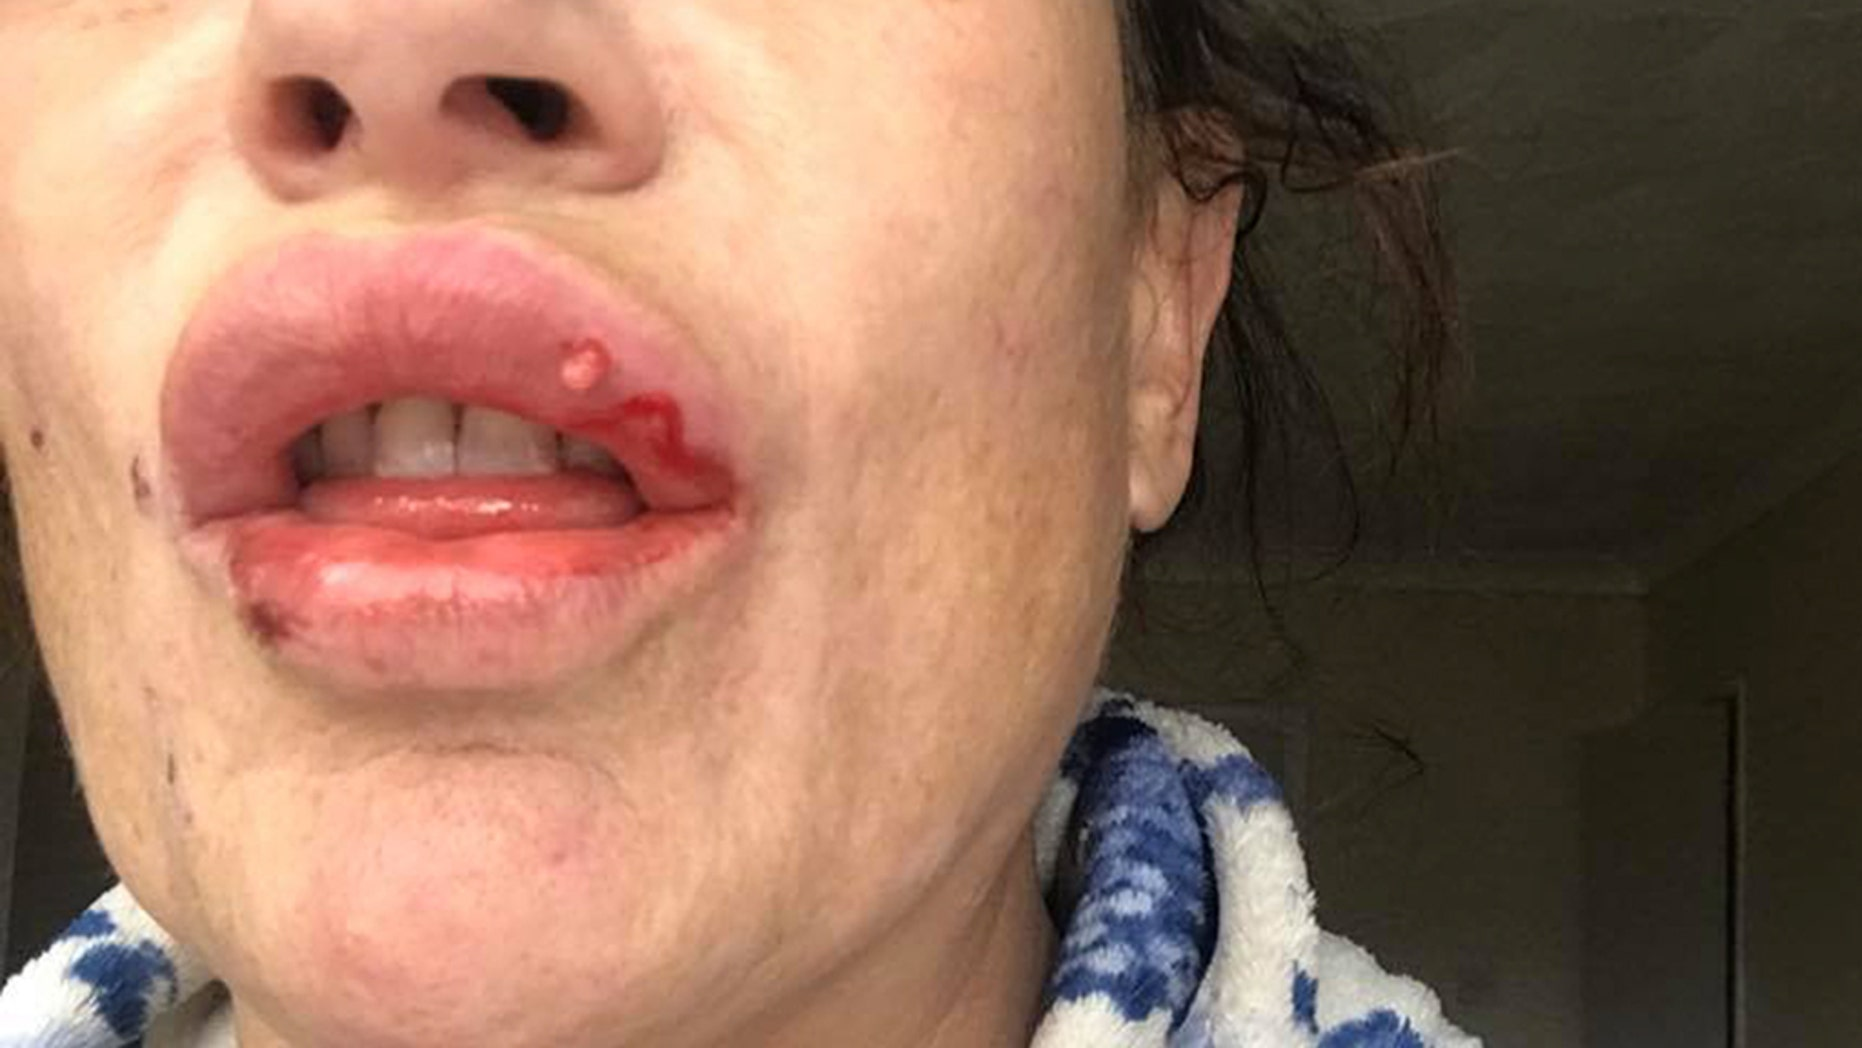 Tracy Bates said she noticed her lips were more swollen than usual, and shortly after recognized an infection and tried to squeeze the filler out.